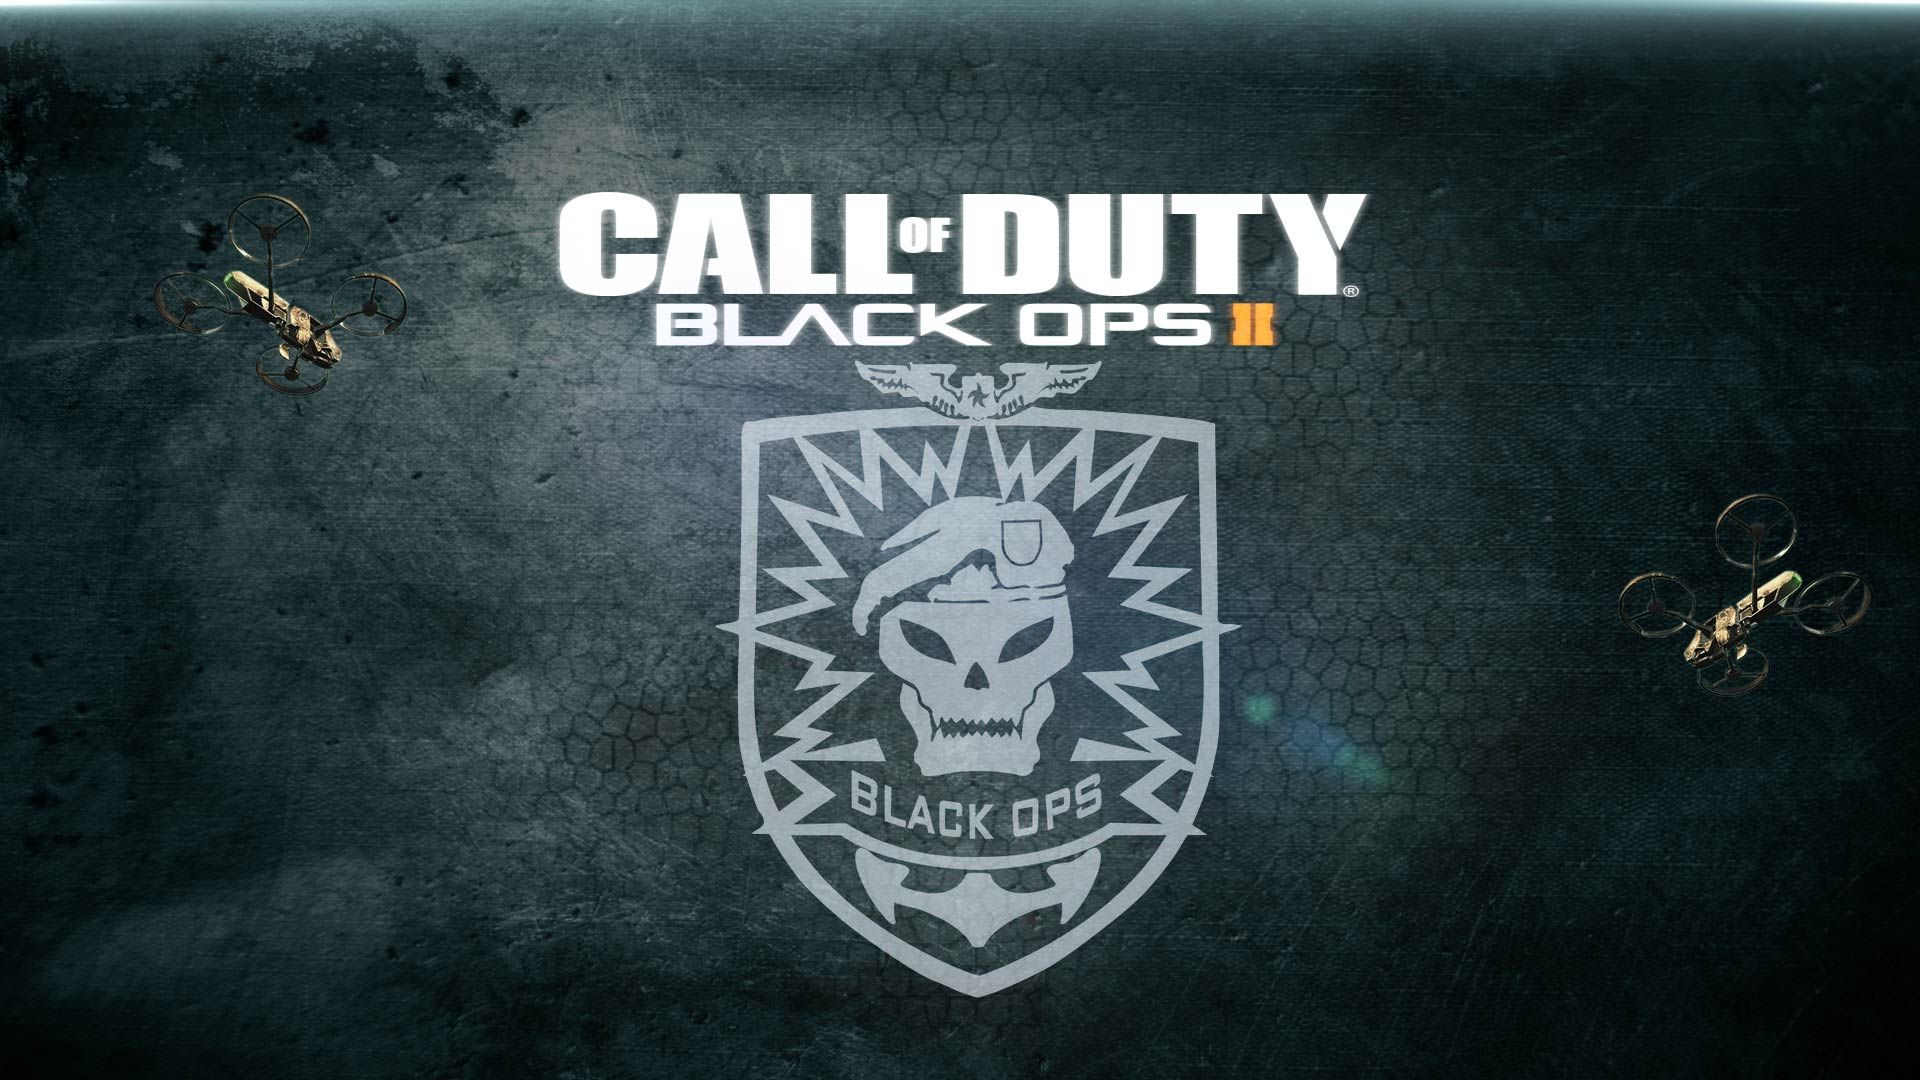 Call Of Duty Black Ops II Wallpapers Wallpaper 1920x1200 2 43